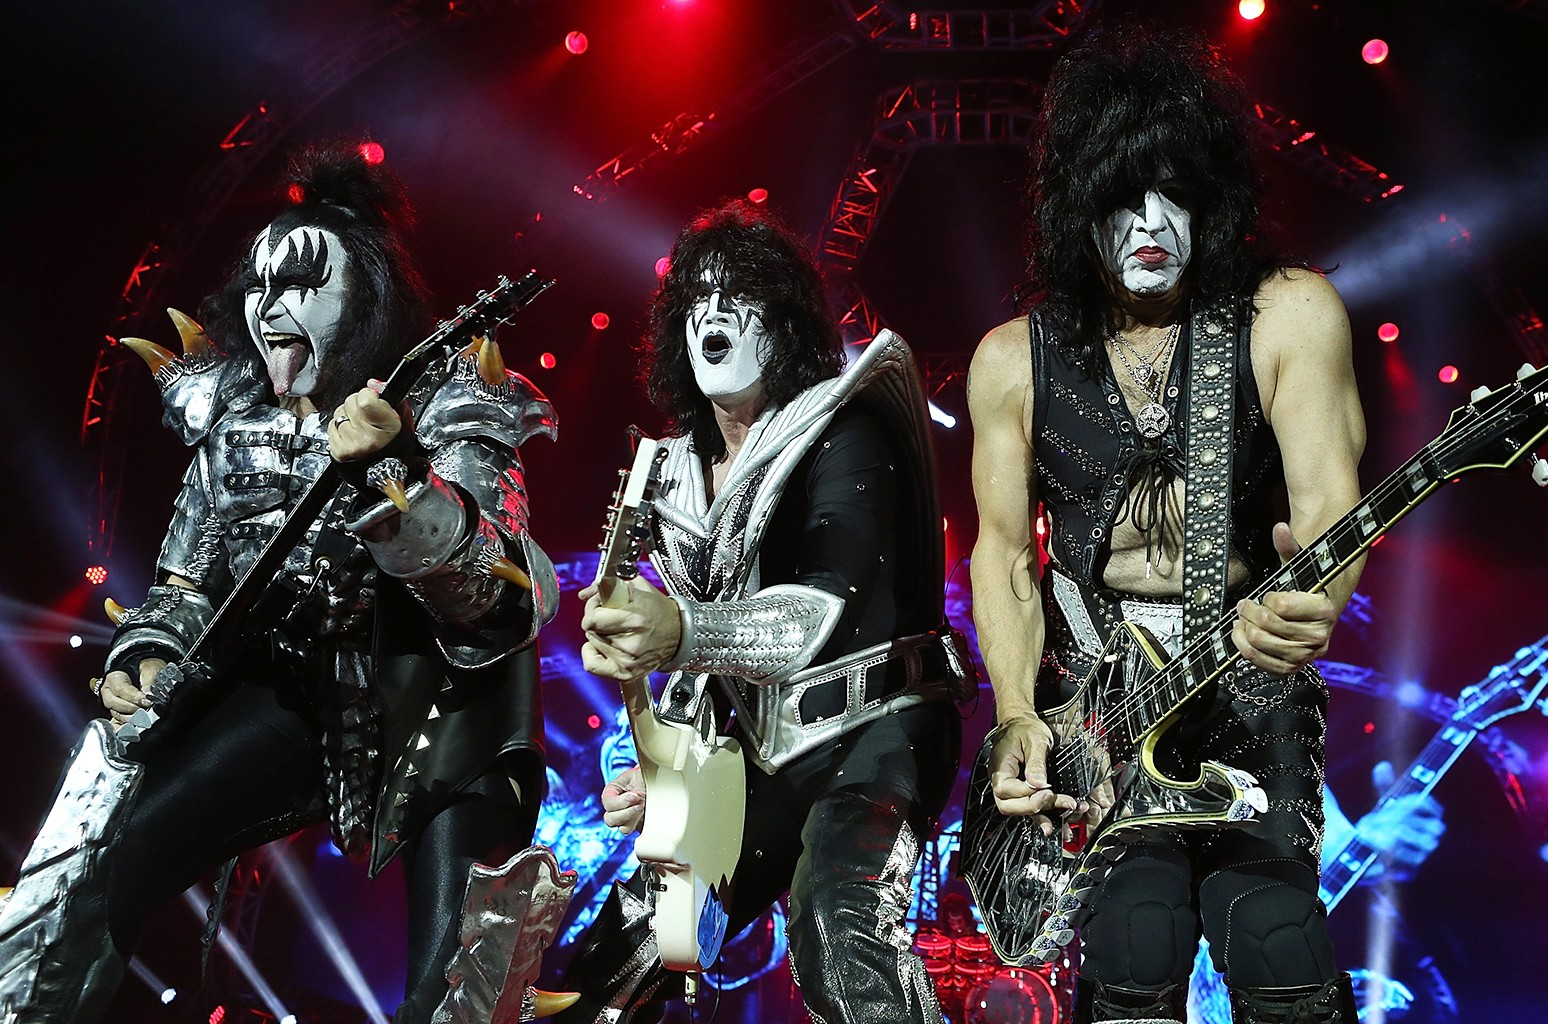 Gene Simmons, Tommy Thayer and Paul Stanley of KISS